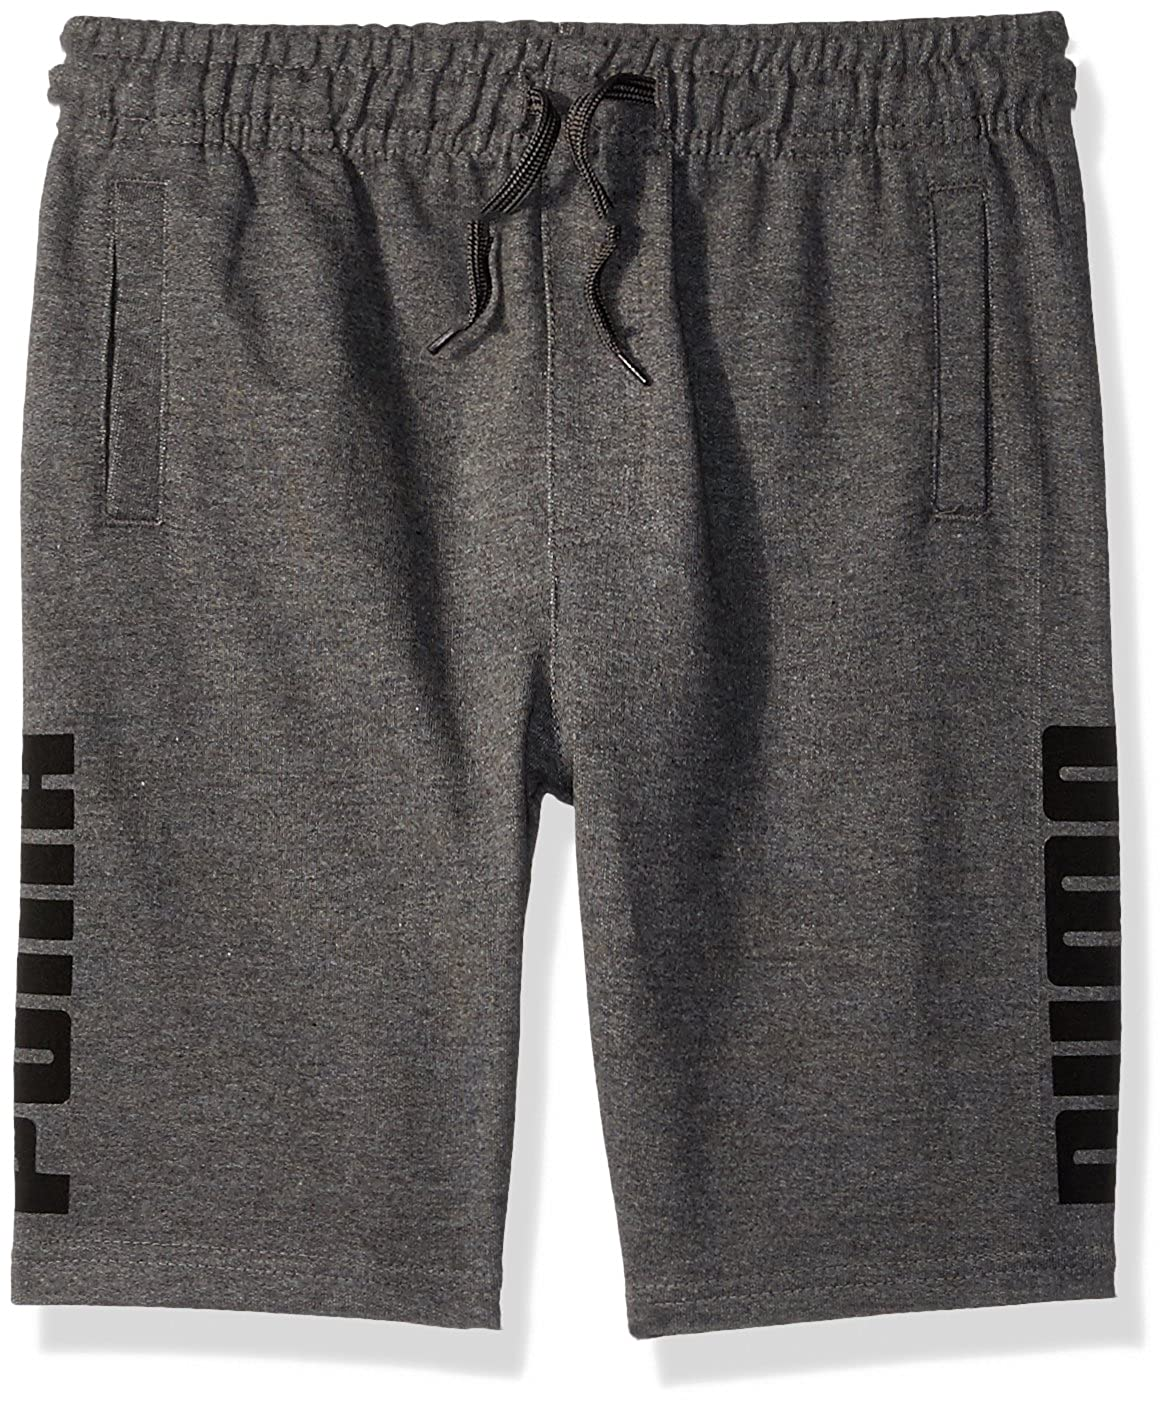 PUMA Boys Boys' Rebel Shorts